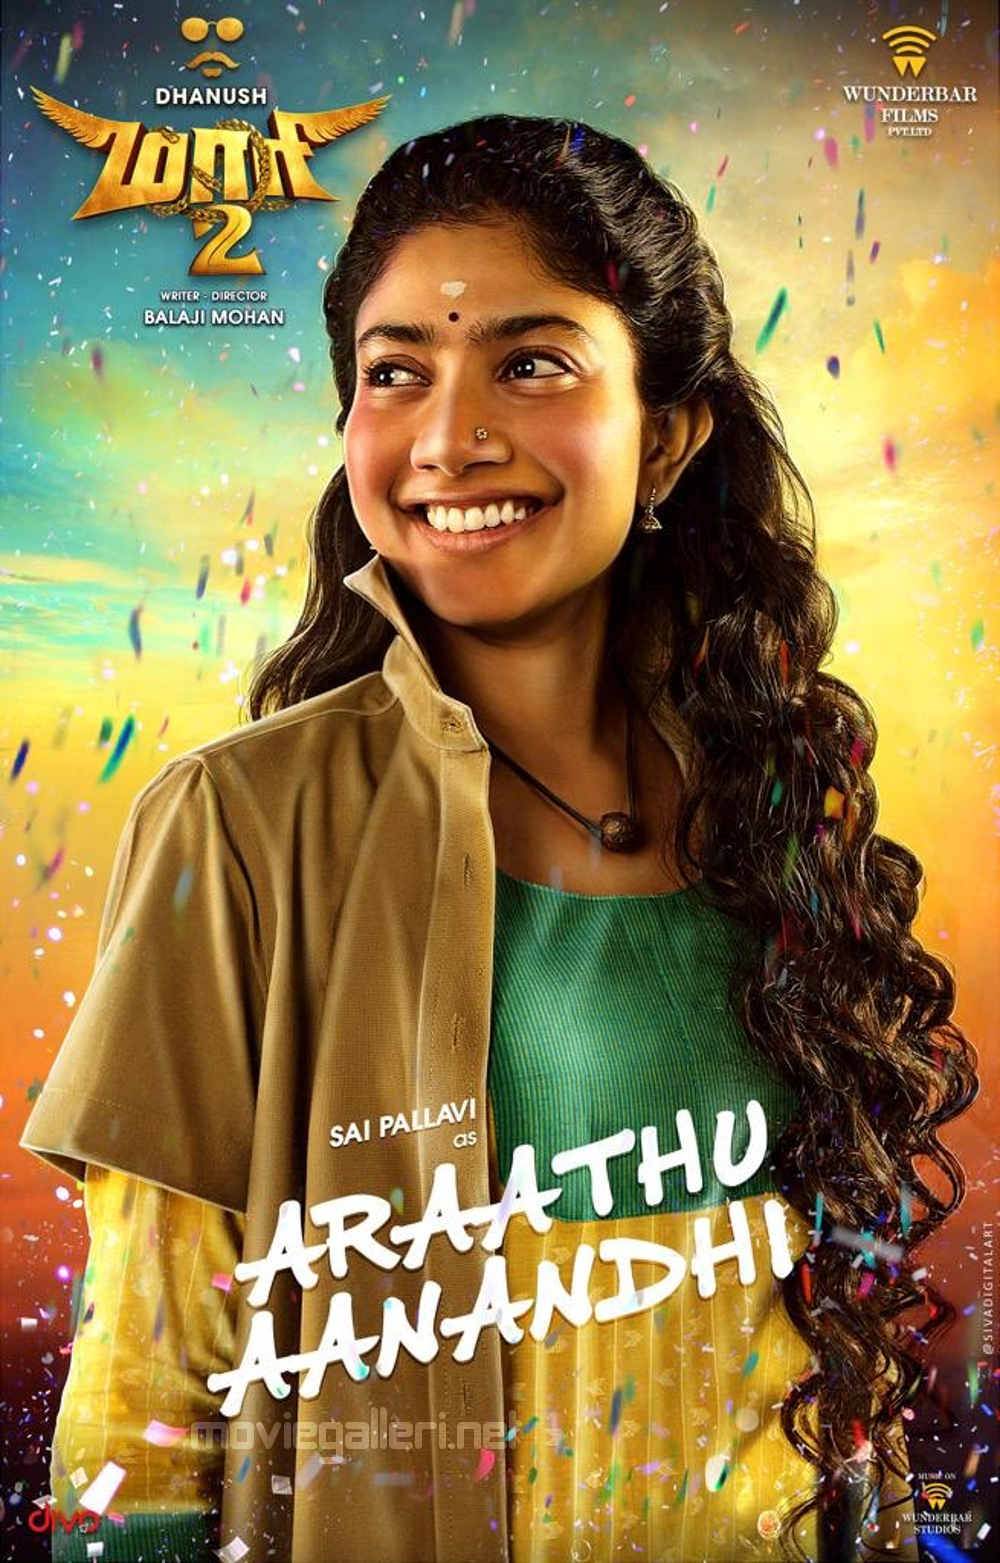 Sai Pallavi as Araathu Aanandhi in Maari 2 Movie Posters